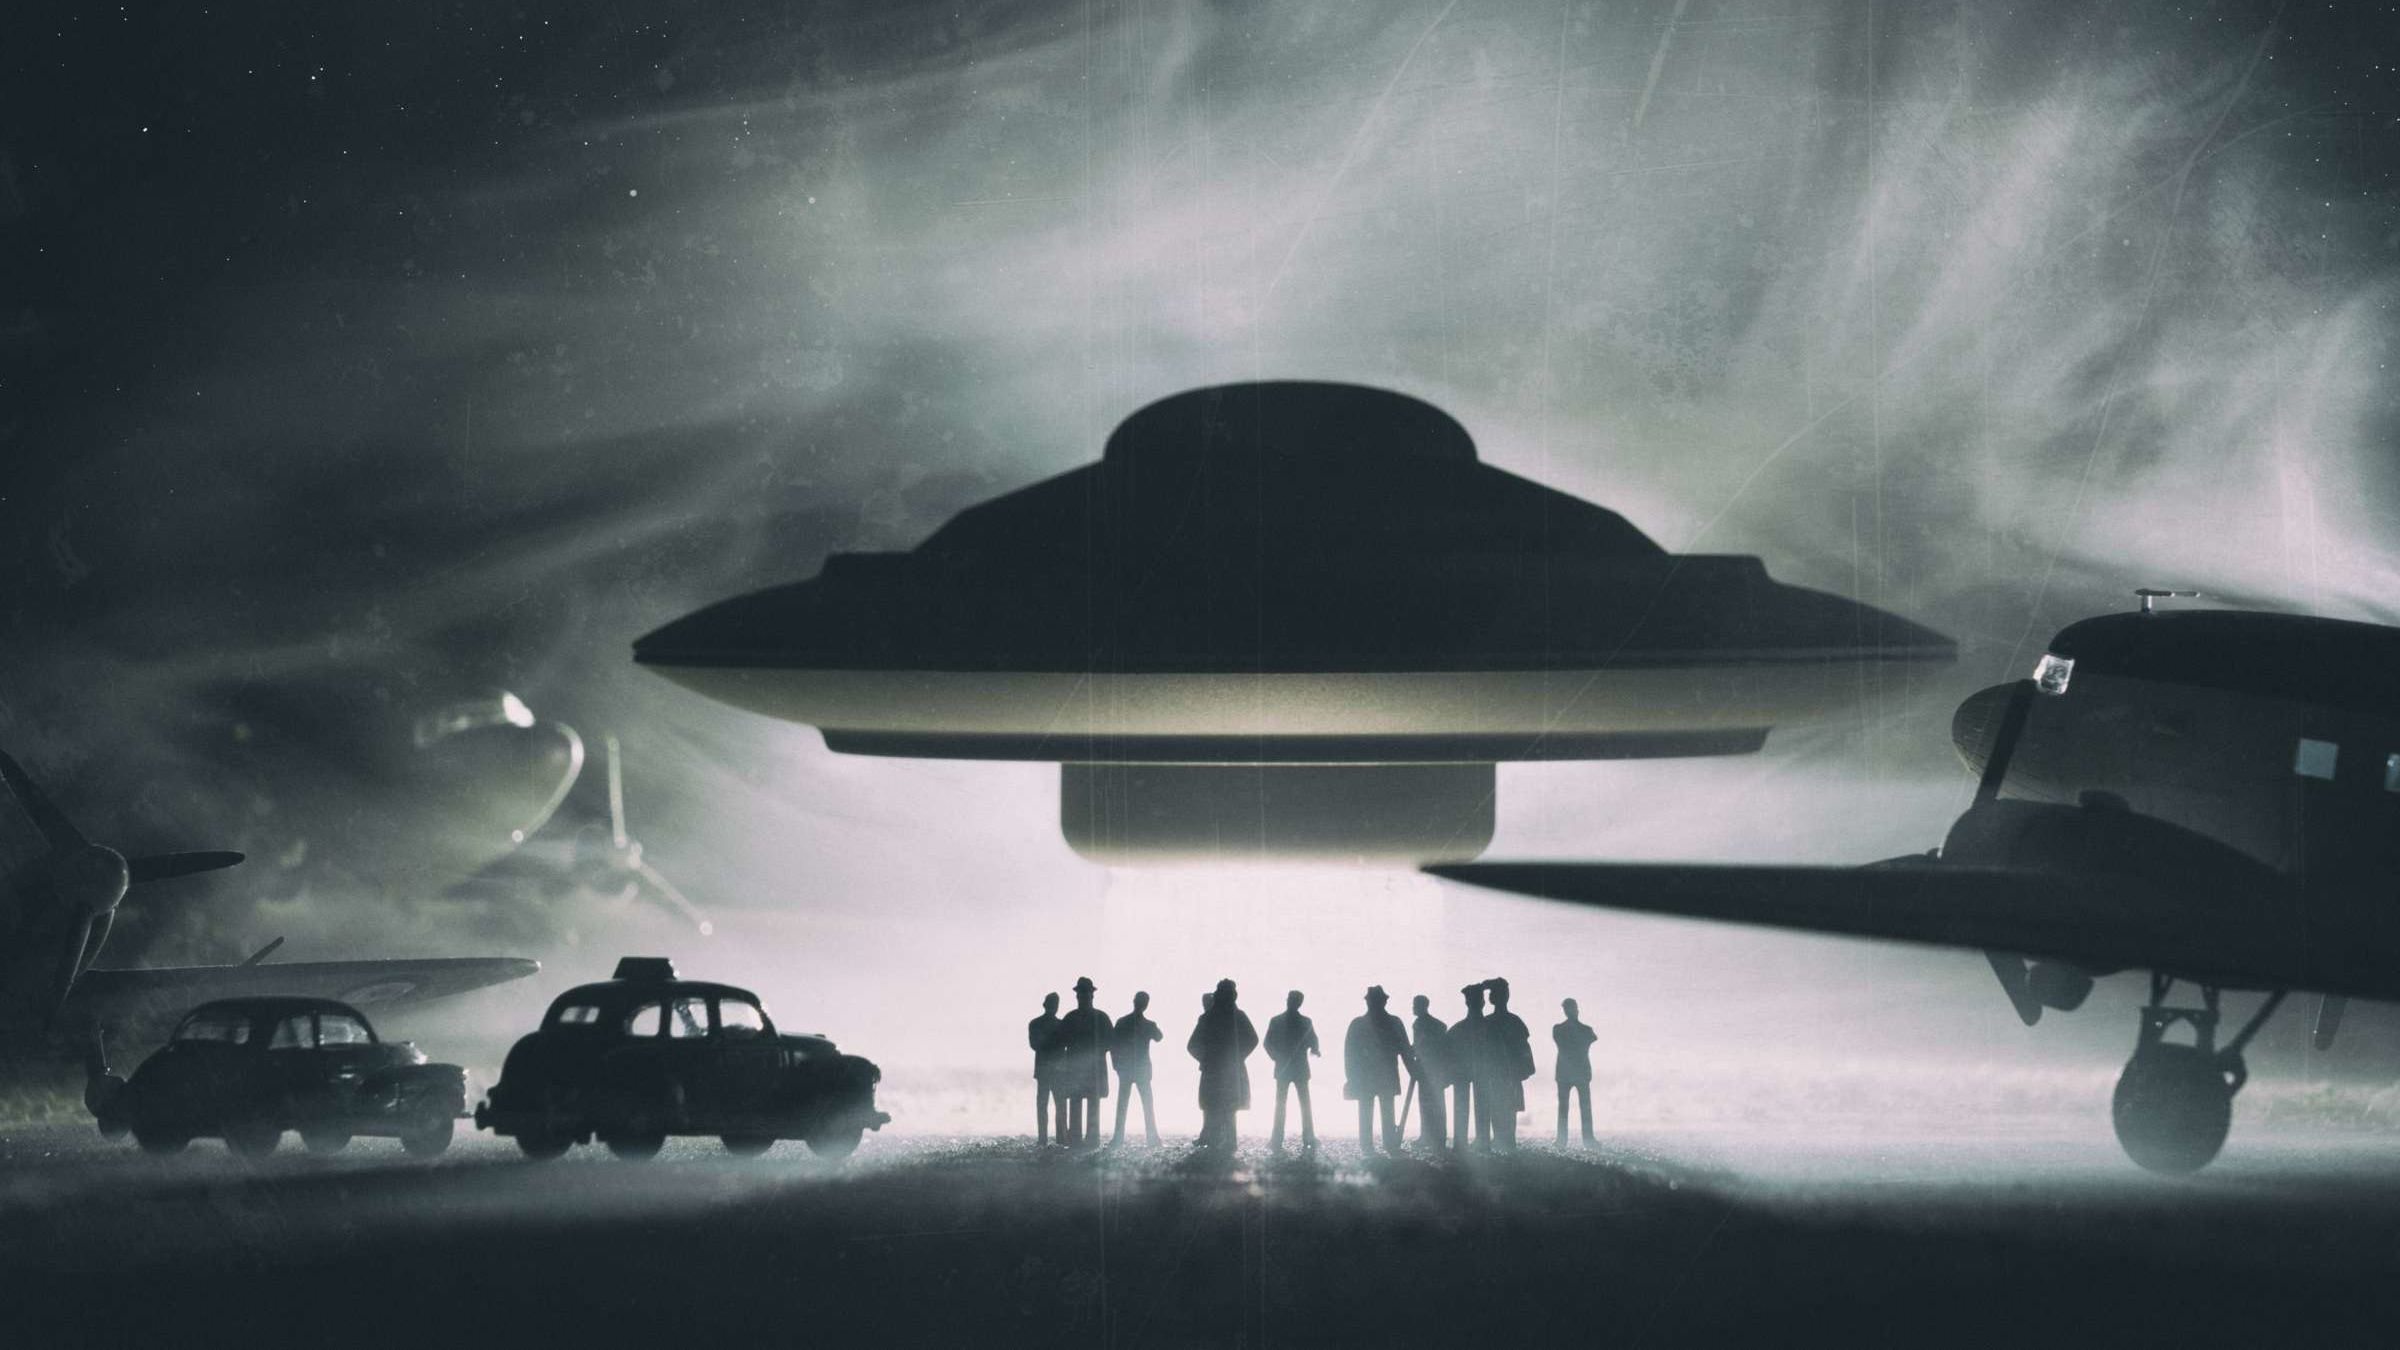 9 Facts About Project Blue Book, the Government's Top-Secret UFO Program